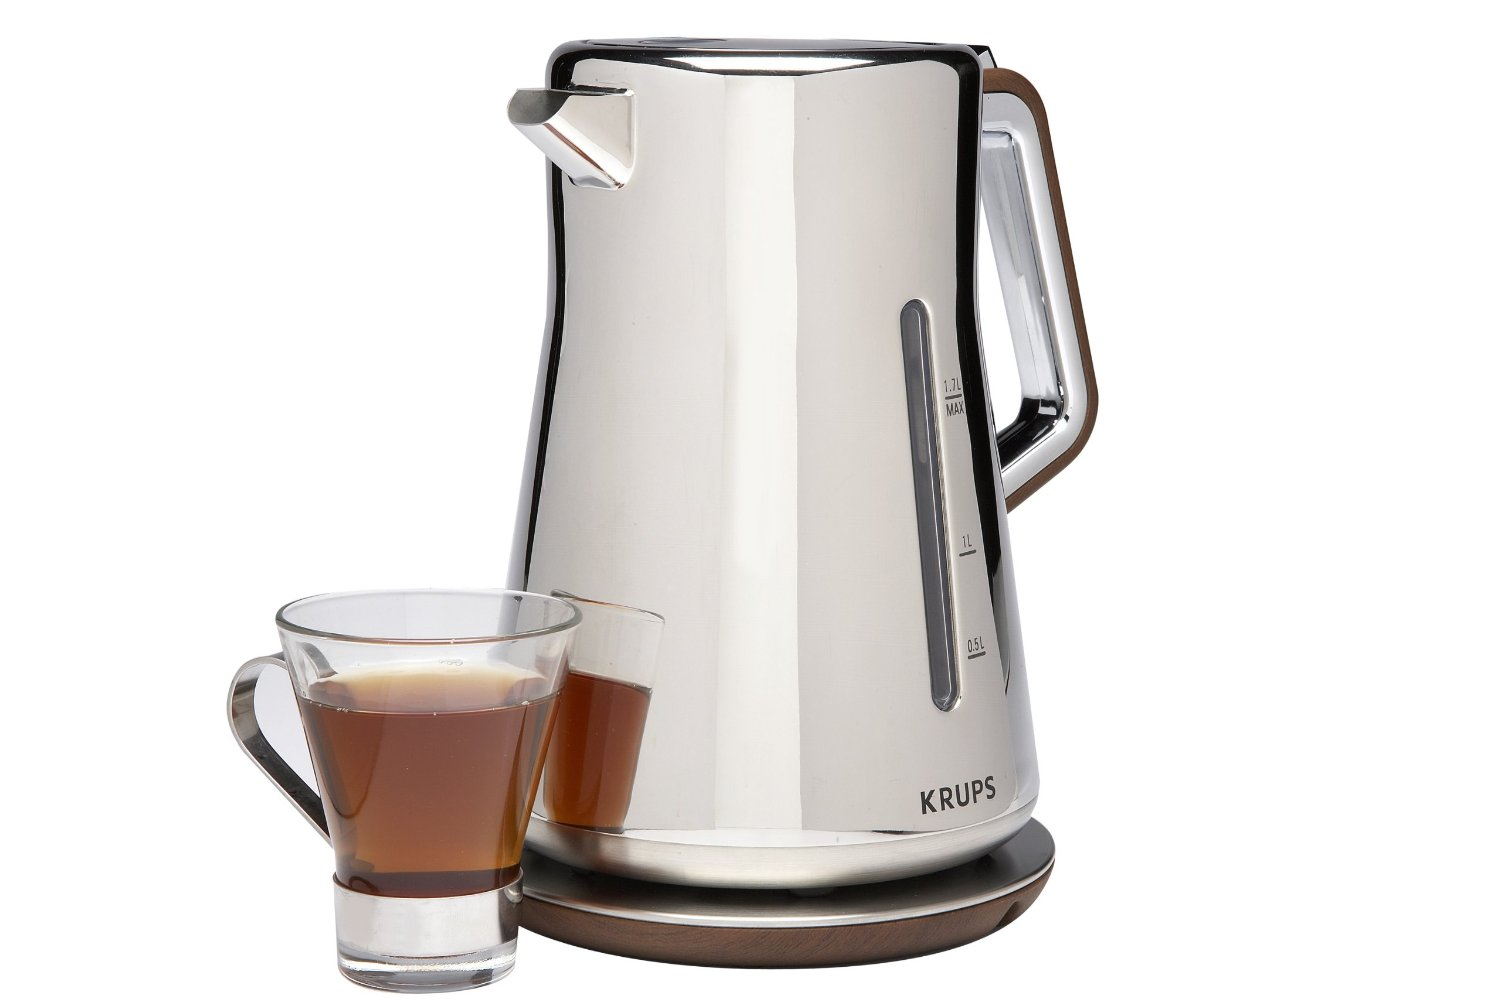 KRUPS BW600 Silver Art Collection Cordless Electric Kettle